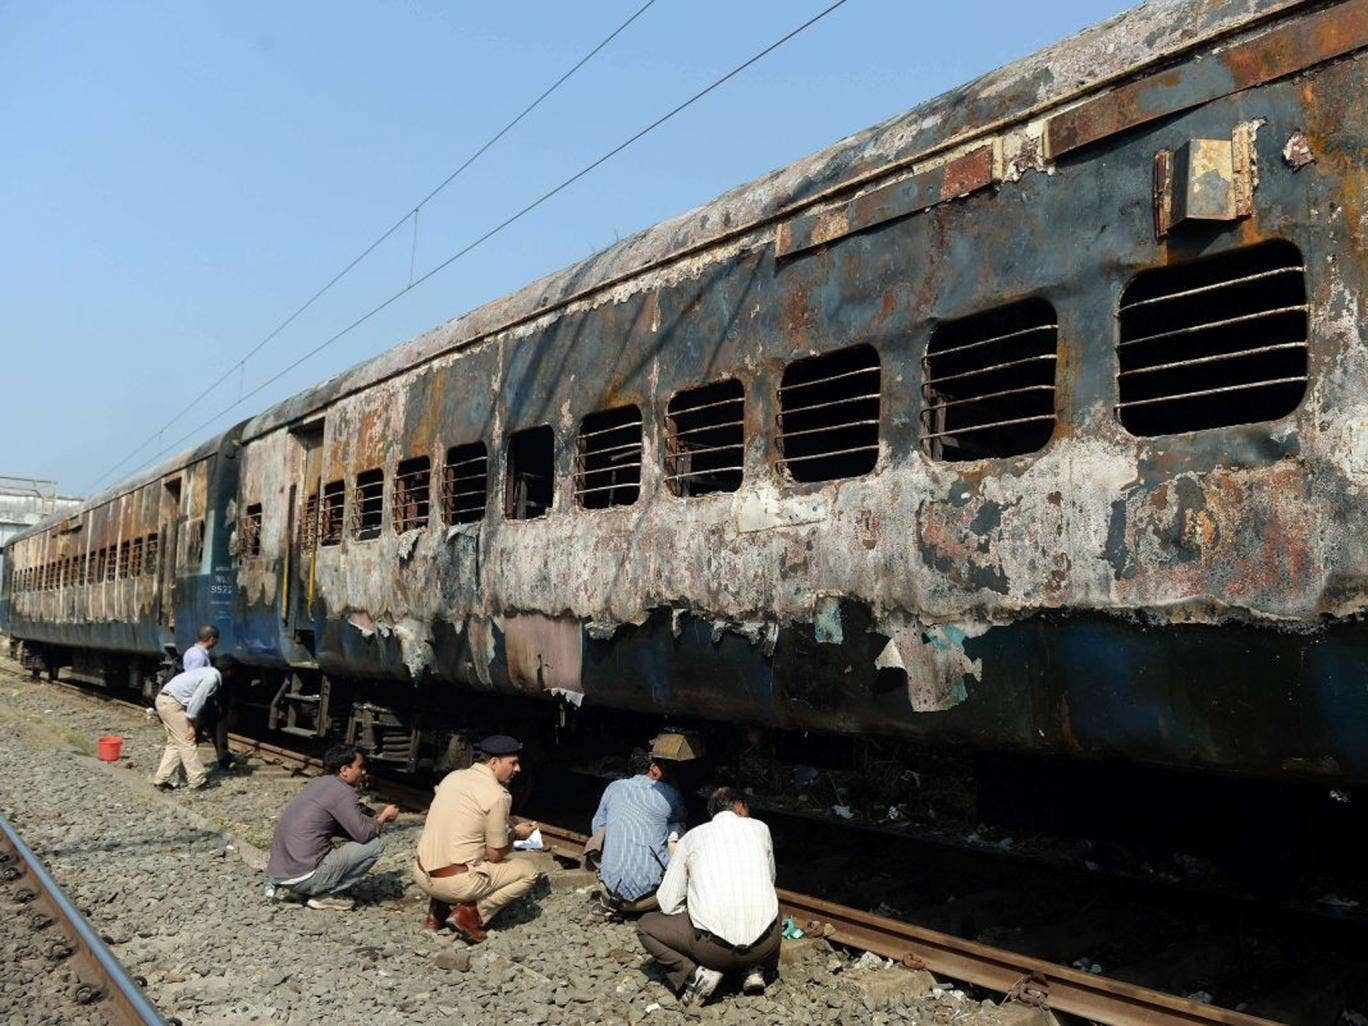 Indian railway and police officials inspect the burnt carriages of the long distance passenger train near Dahanu railway station